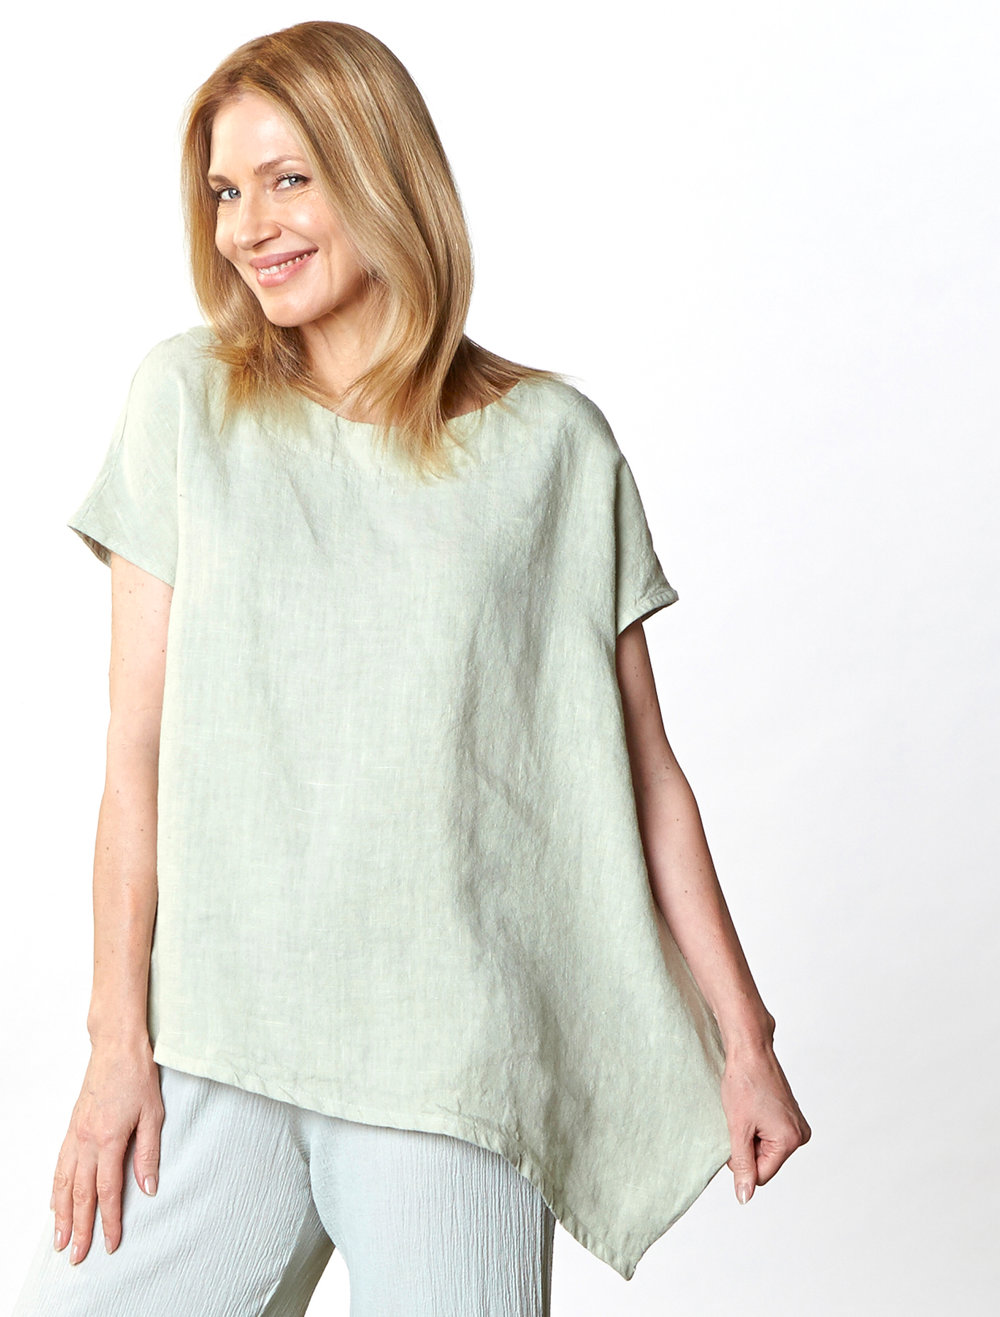 Ivy Shirt in Pistachio Heavy Linen, Oscar Pant in Pistachio Cotton Gauze